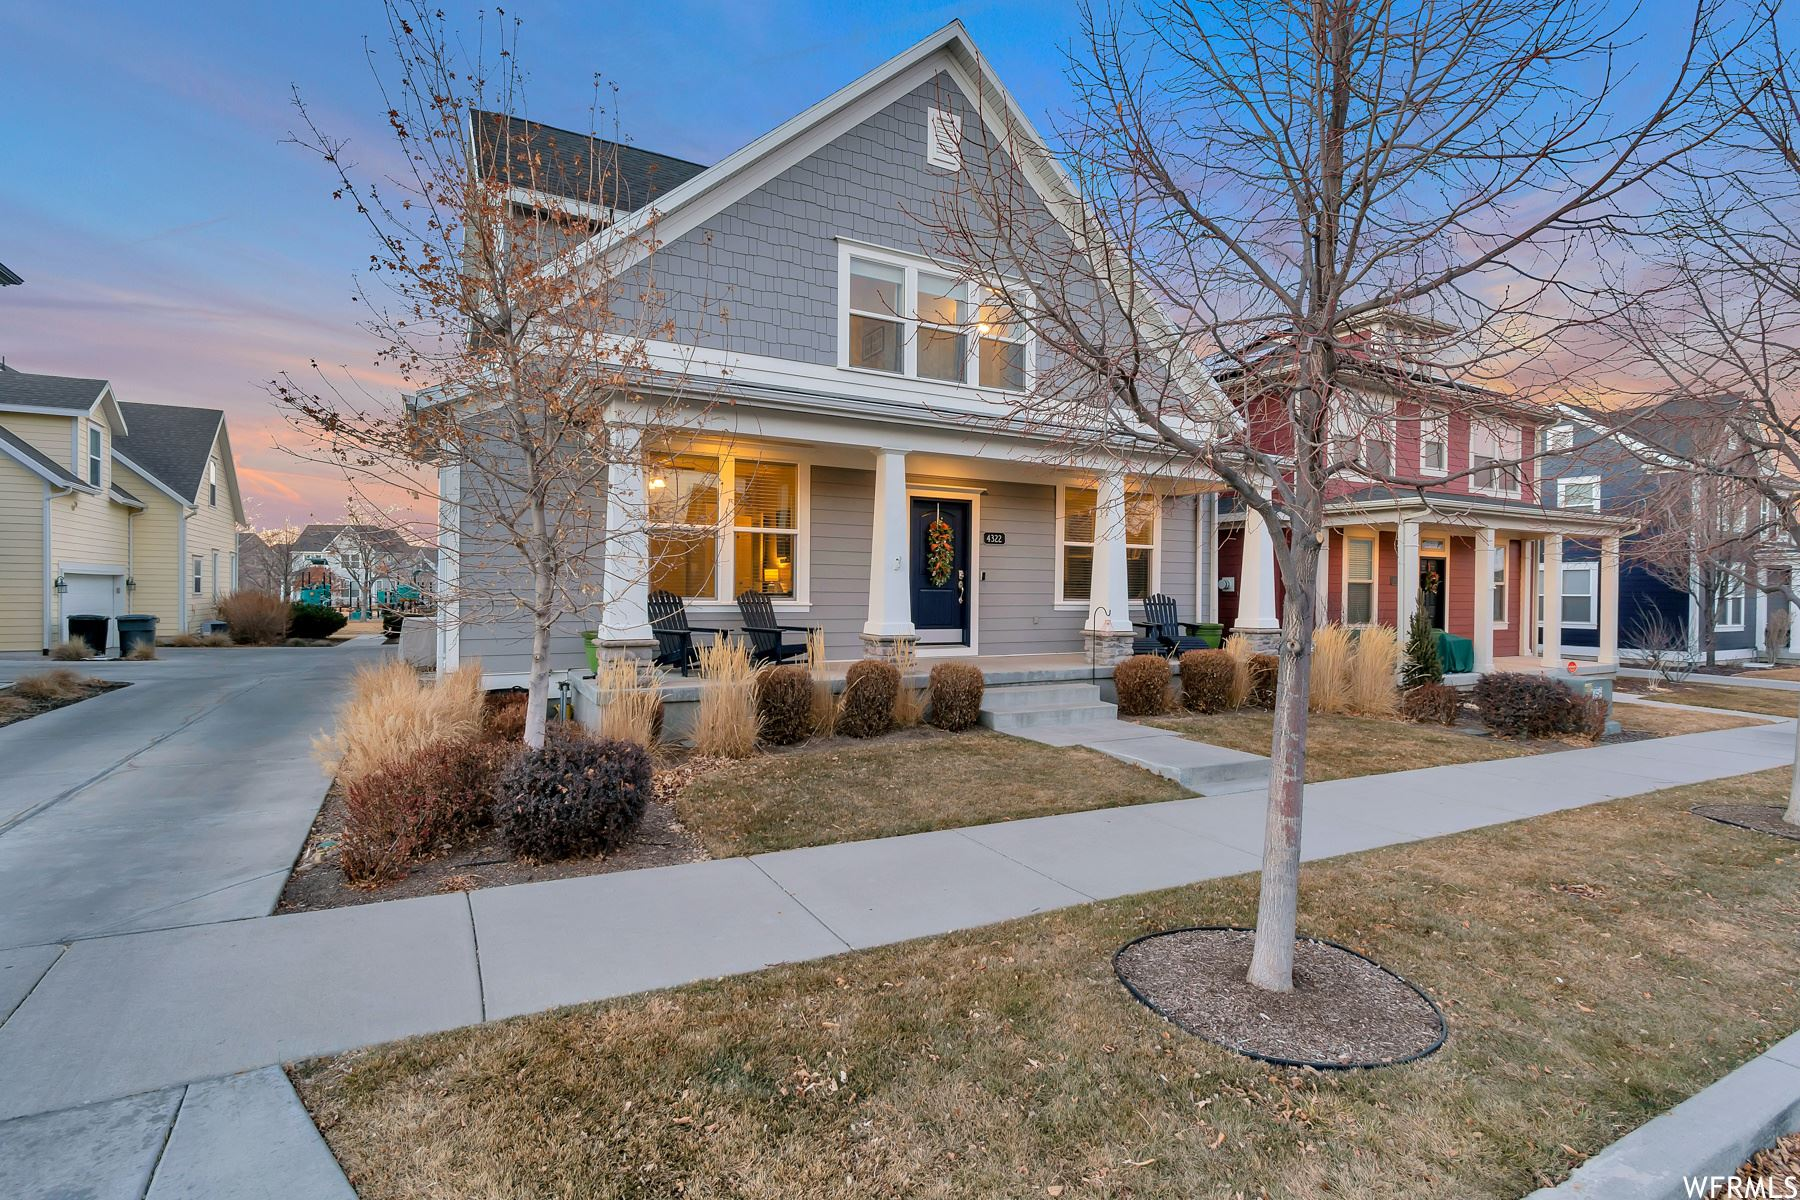 Photo of 4322 W PENTENWELL LN, South Jordan, UT 84009 (MLS # 1721131)